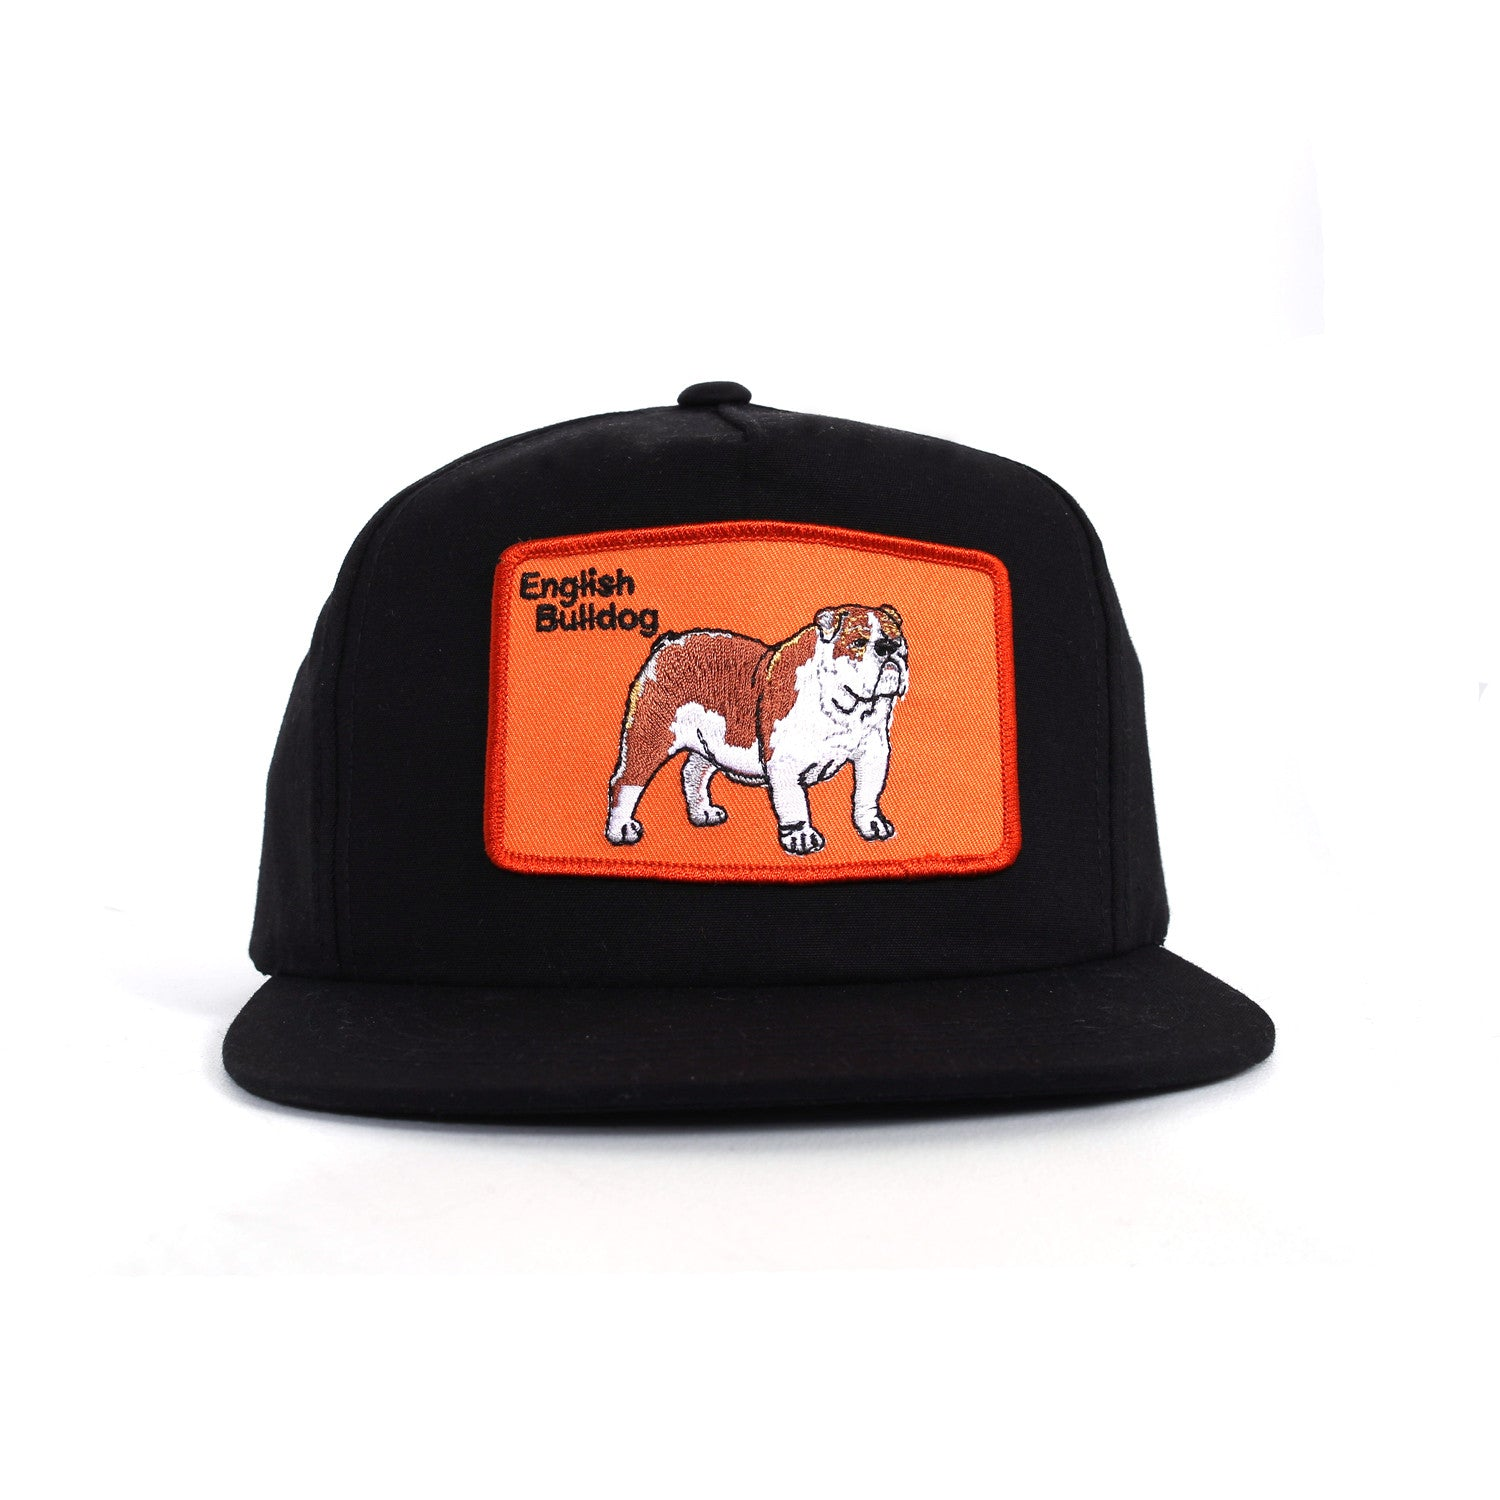 82ebb163c93 English Bulldog Snapback